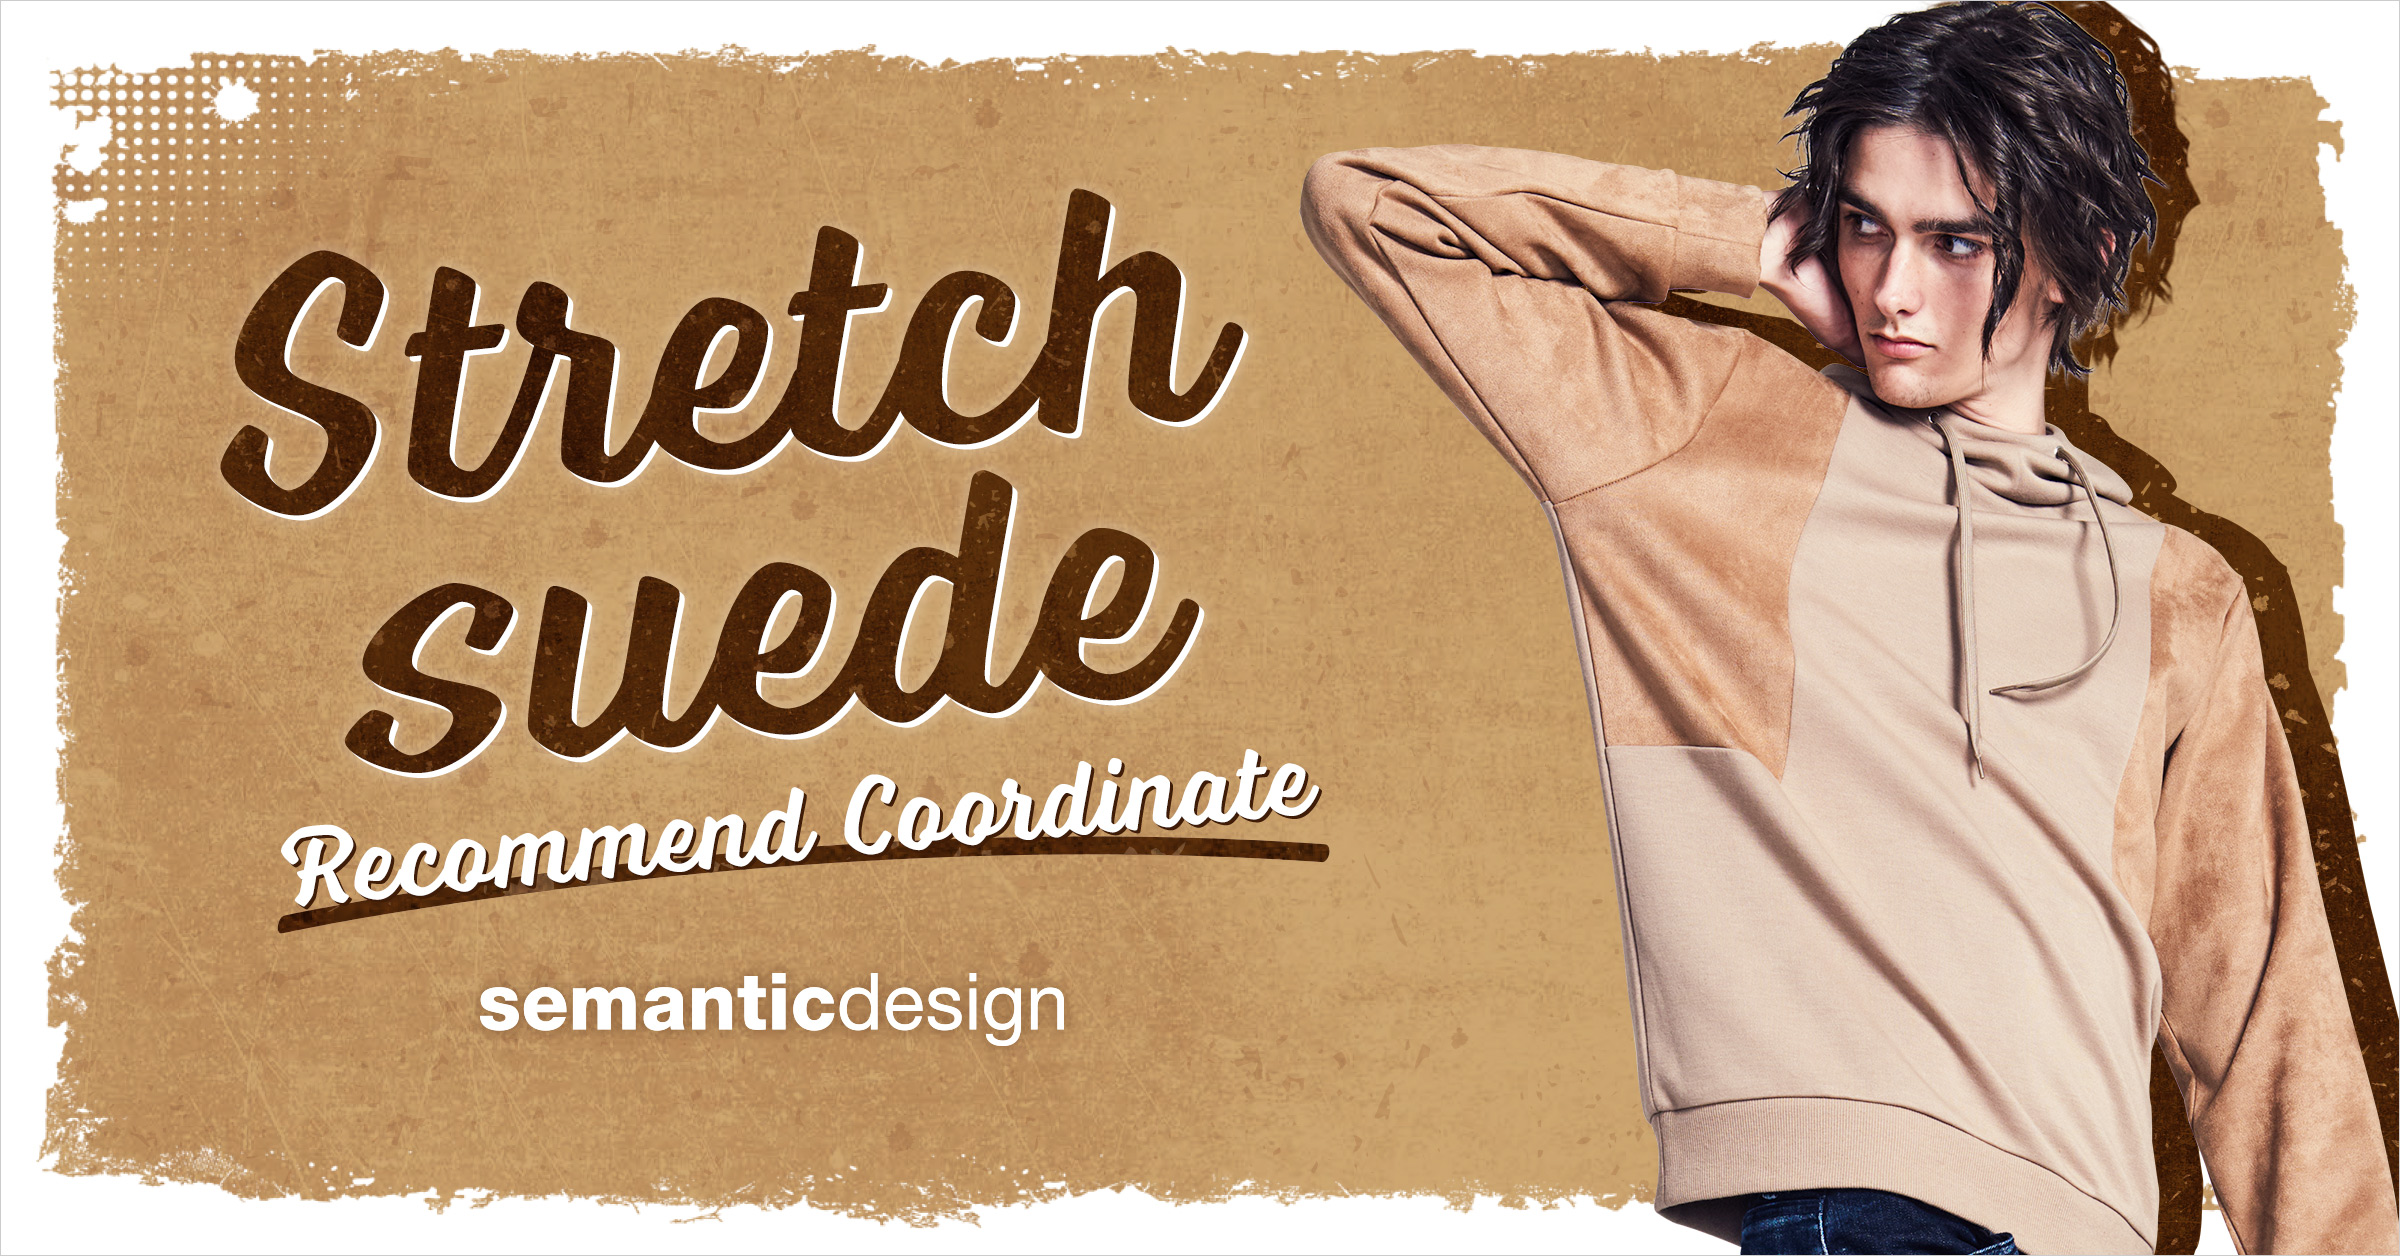 semantic design|Stretch suede  Recommend Coordinate